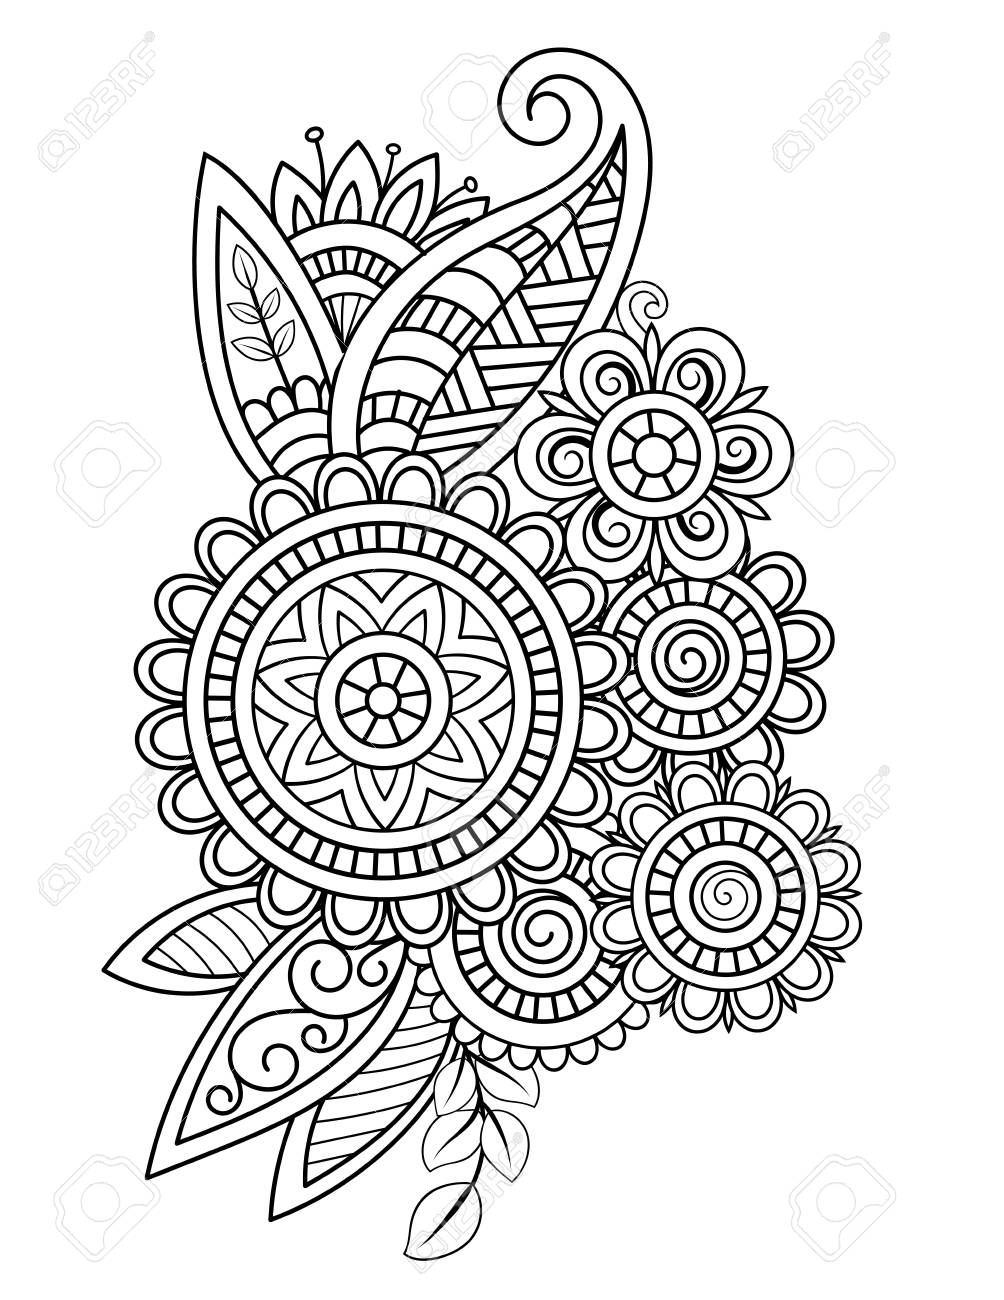 Adult Coloring Page With Oriental Floral Pattern Black And White